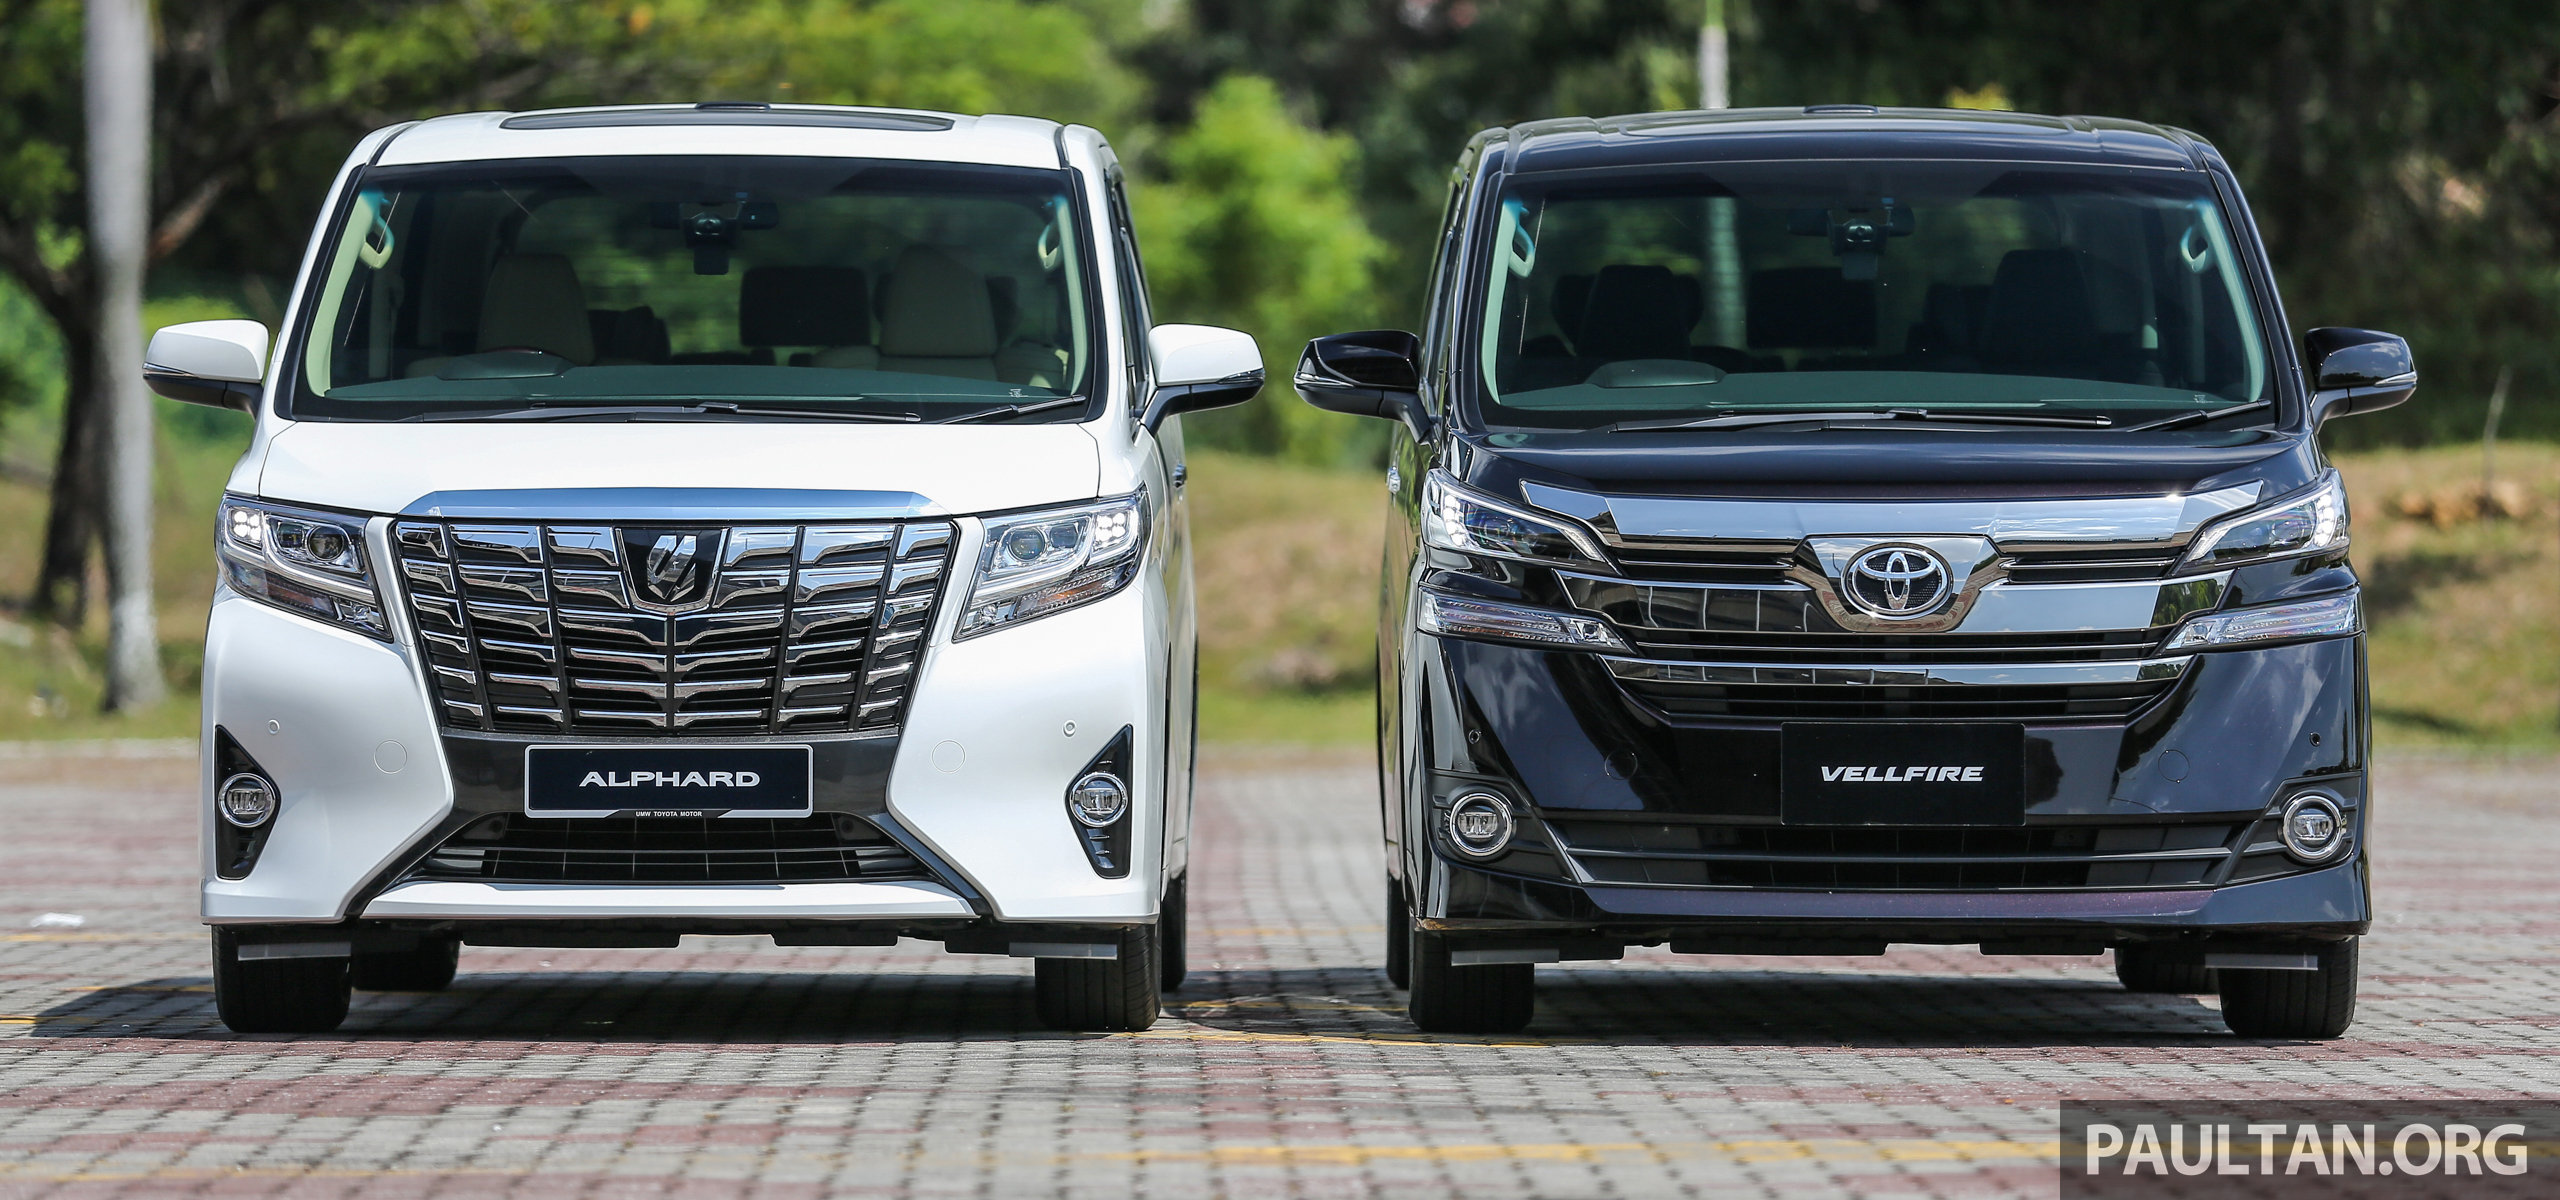 Gallery 2016 Toyota Alphard 3 5 And Vellfire 2 5 Image 529964